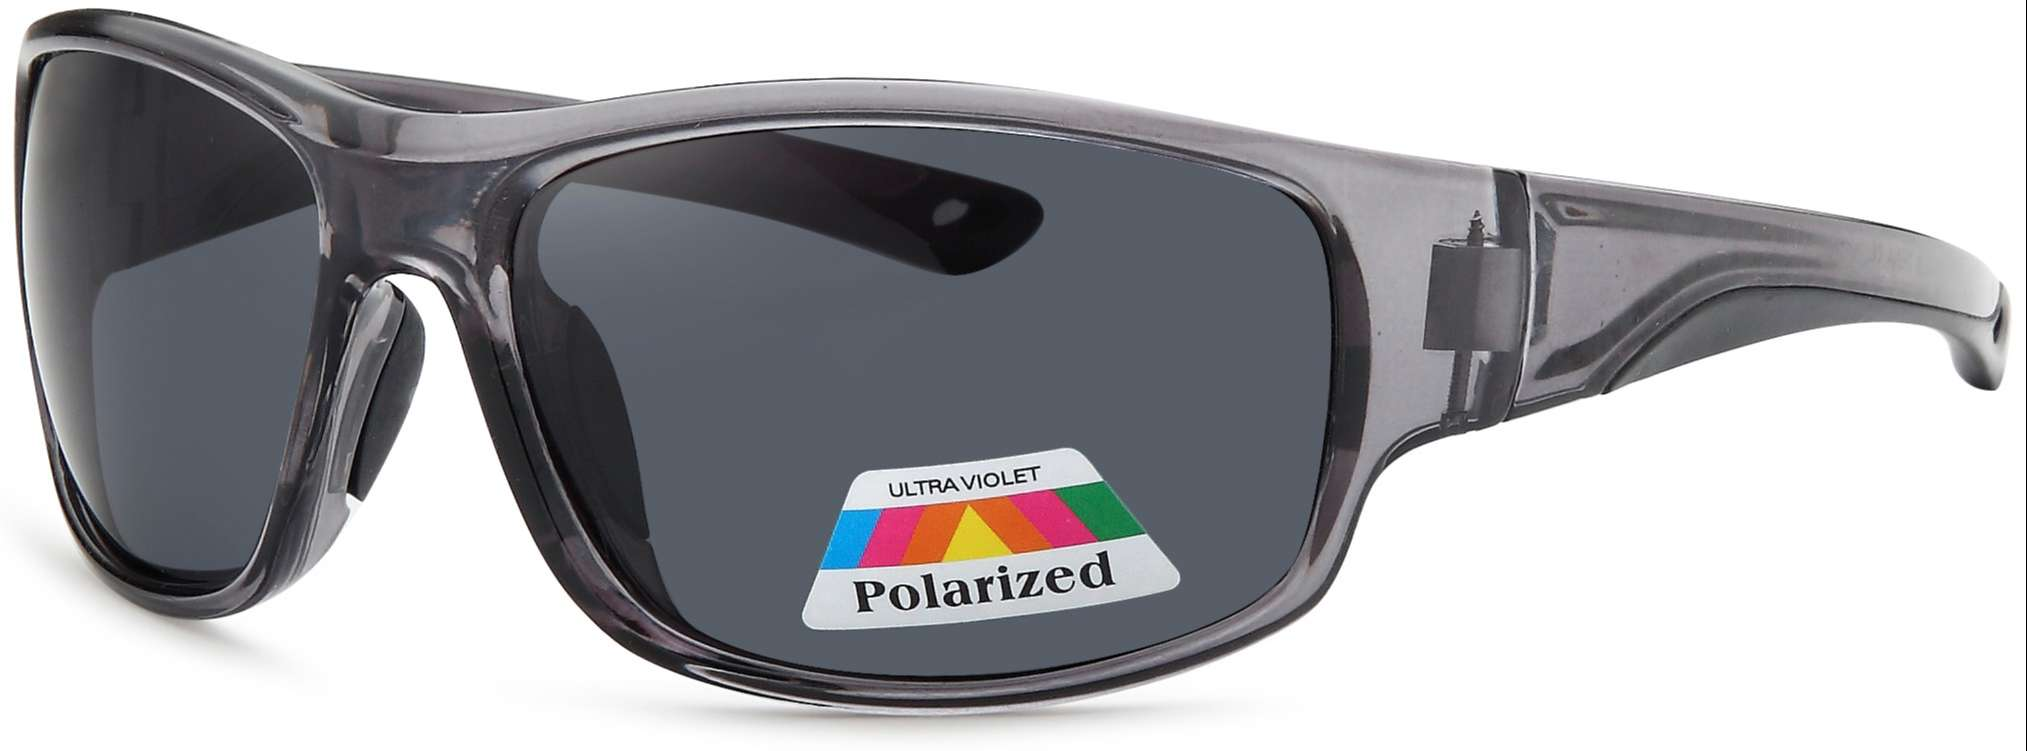 Gray frame smoke lens polarized